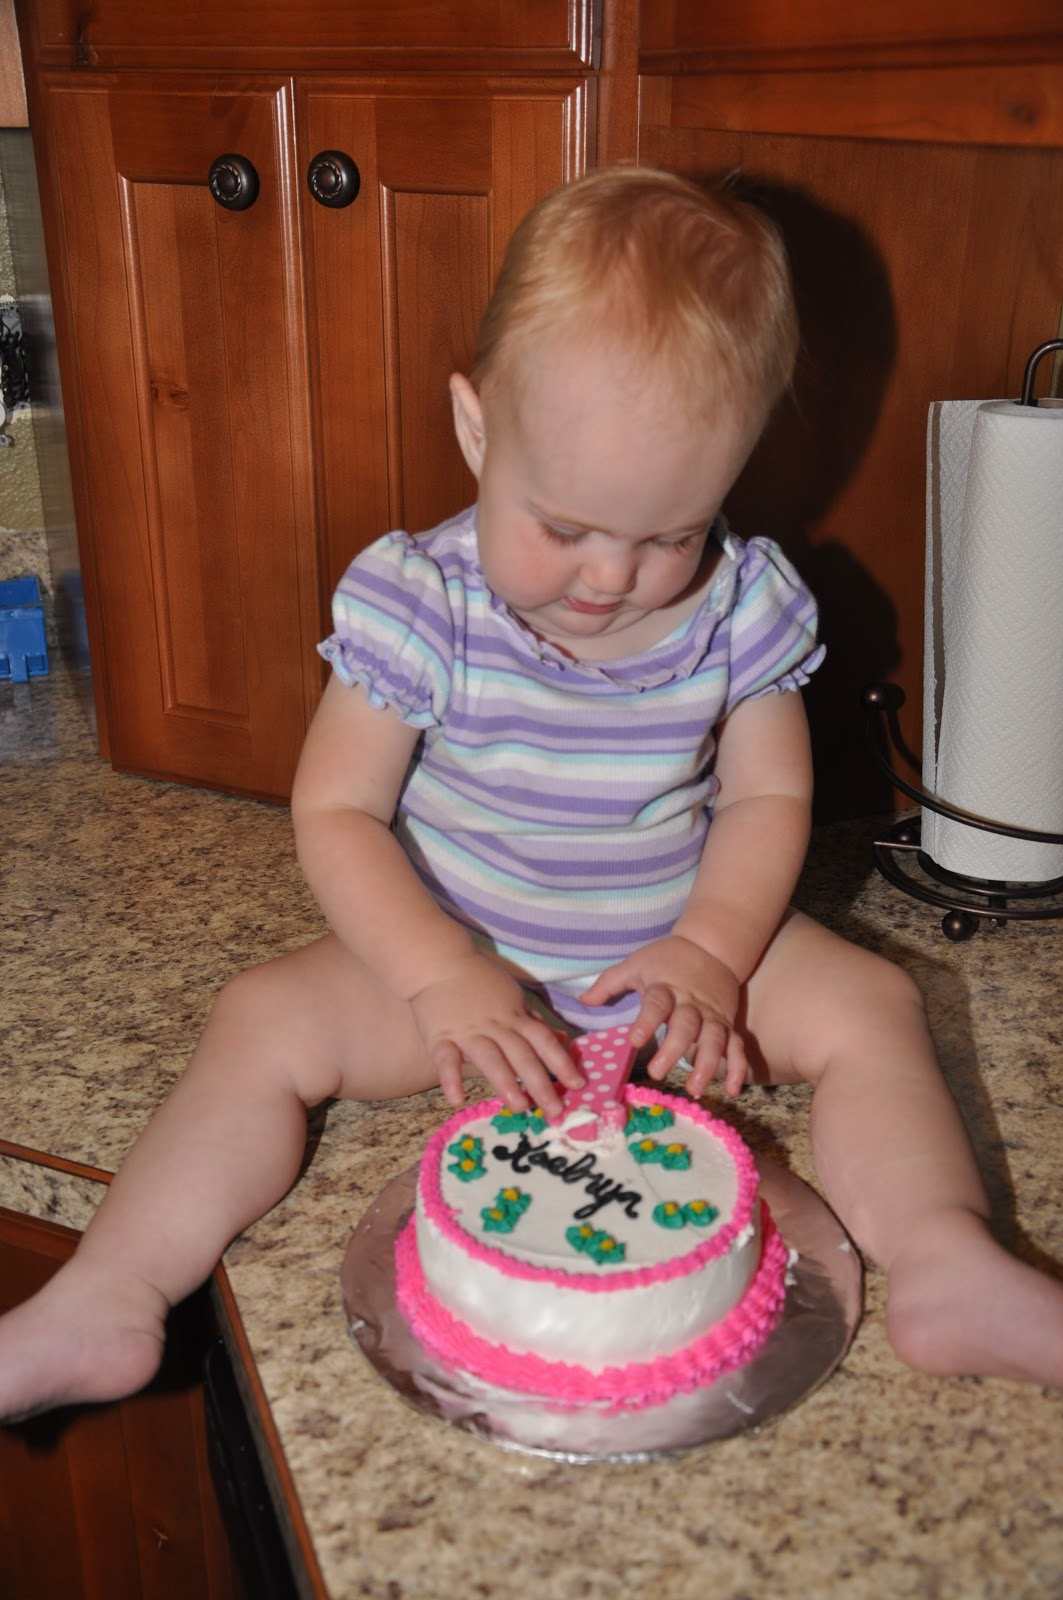 6 Inch Happy Birthday Single Layer Cake Perfect For Baby 10 00